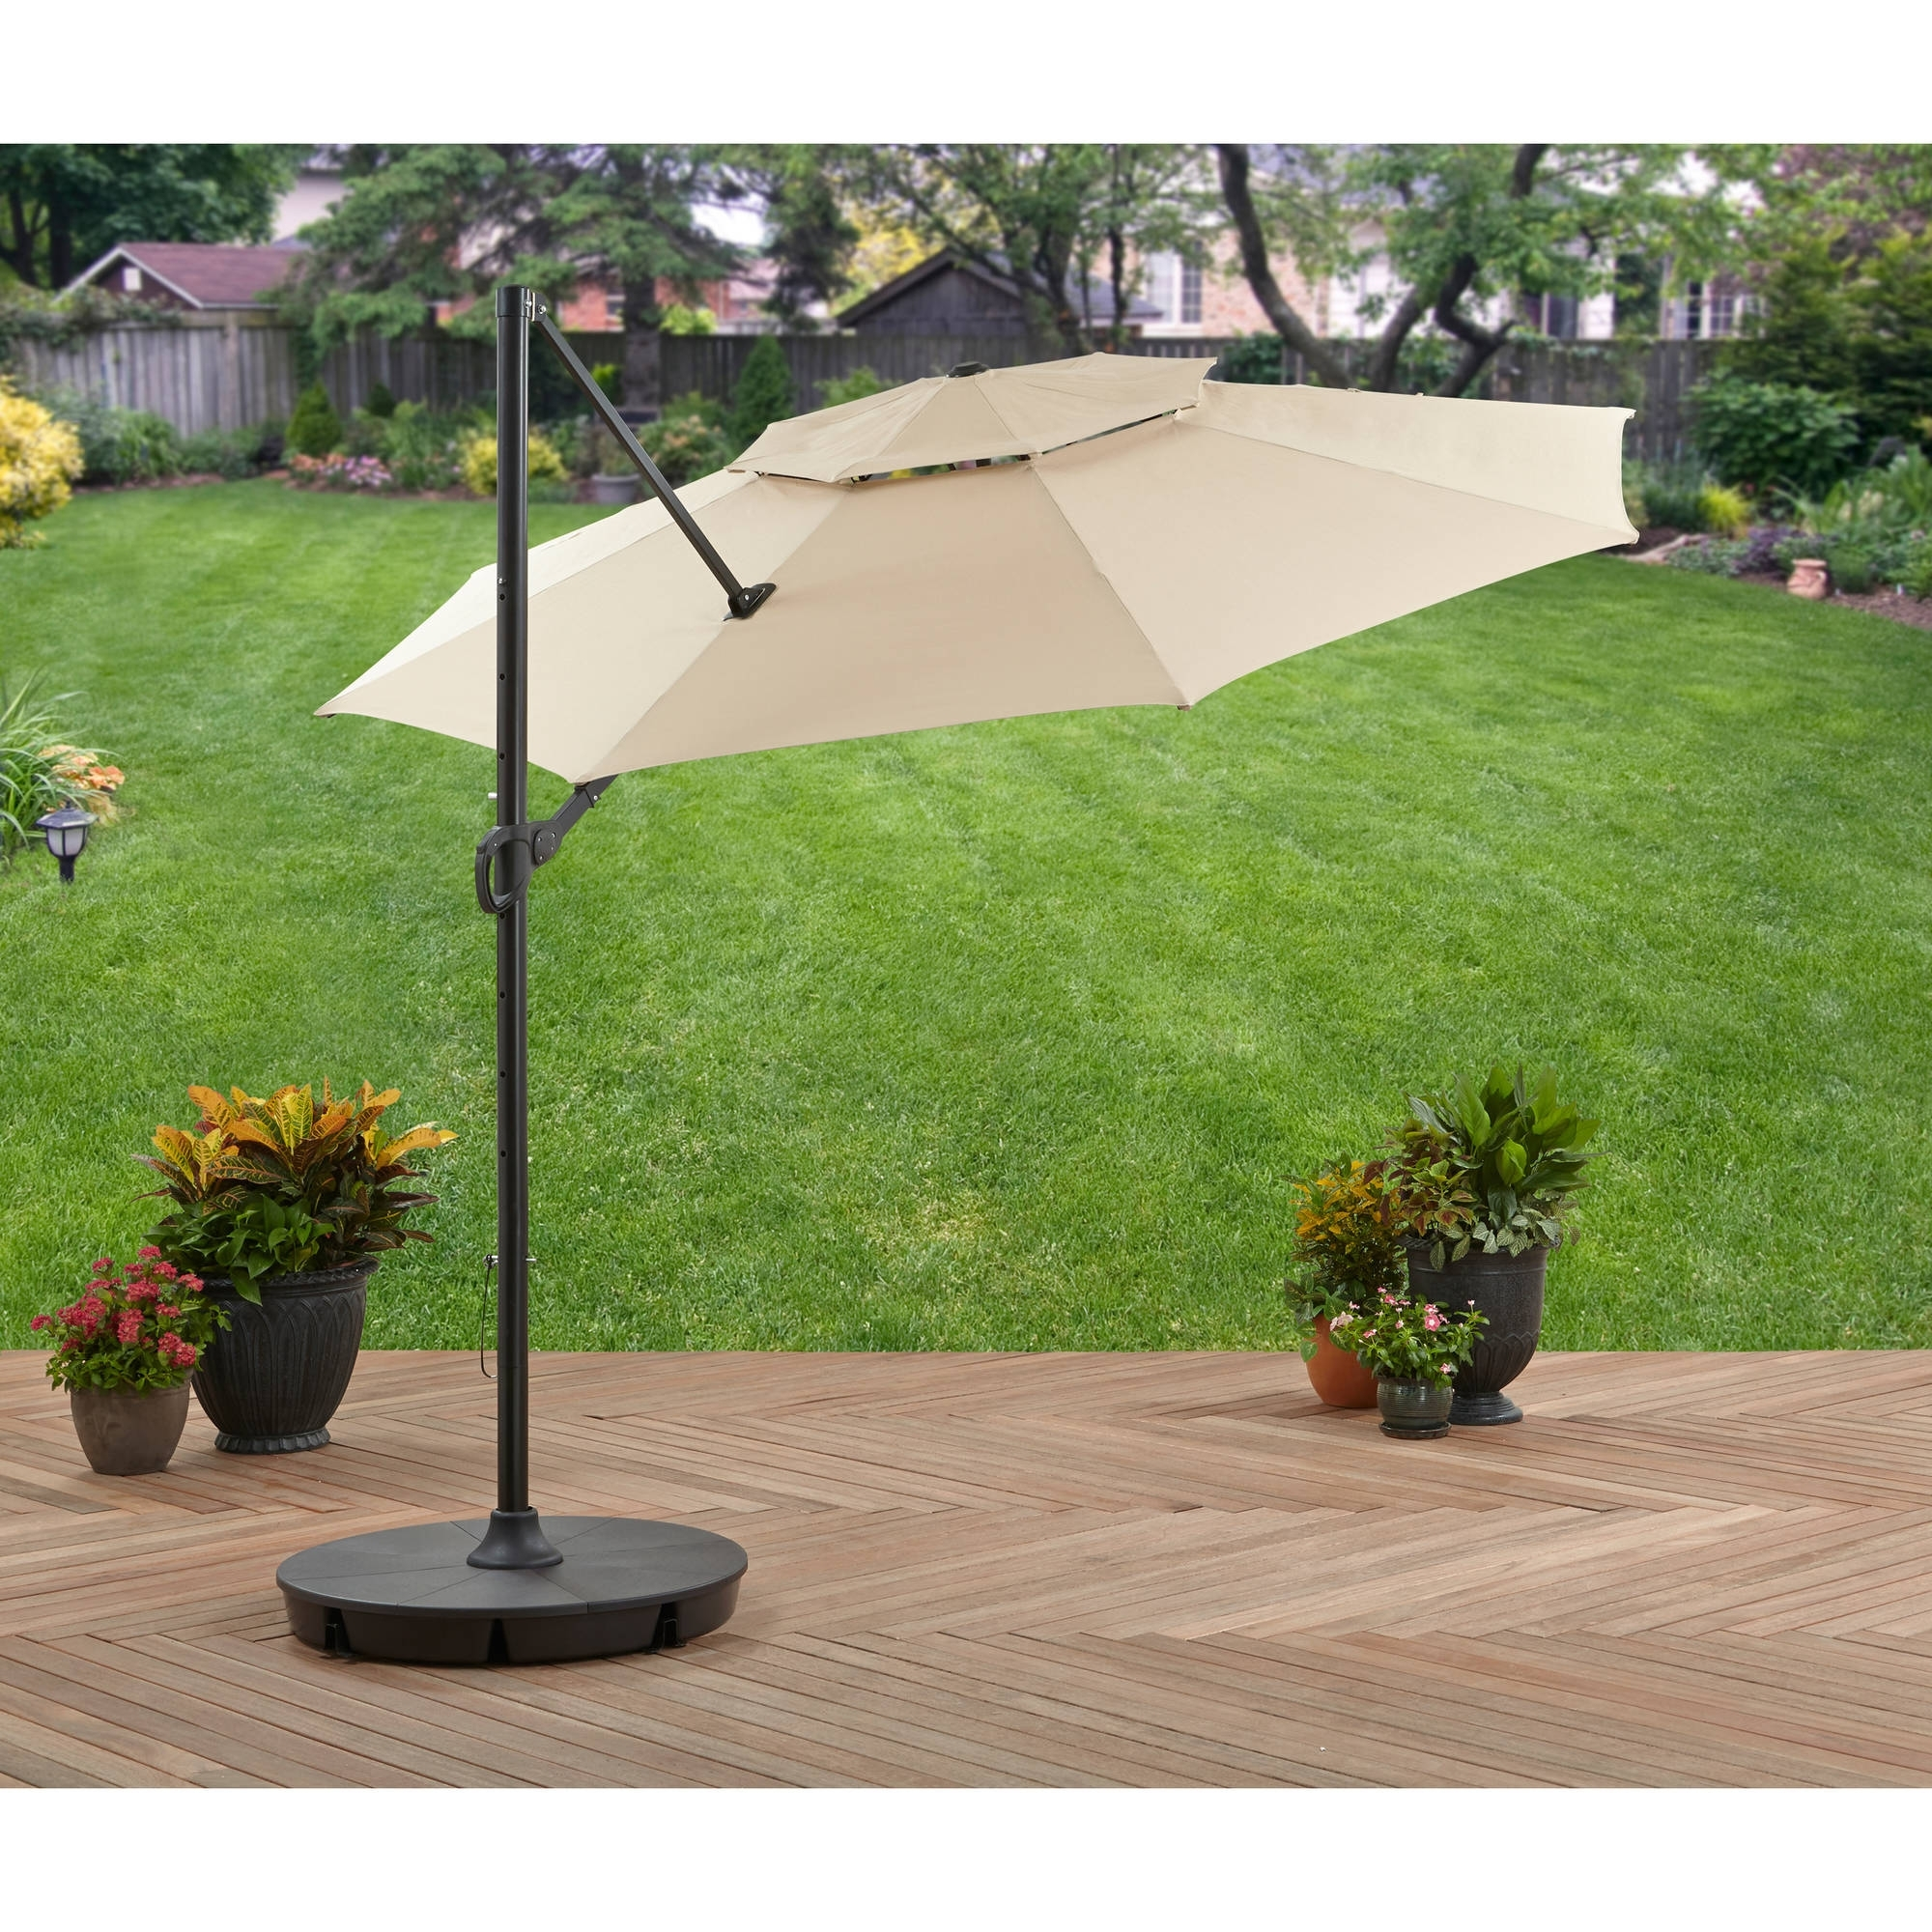 Offset Patio Umbrellas With Base For Popular Better Homes And Gardens 11' Offset Umbrella With Base, Tan (View 11 of 20)